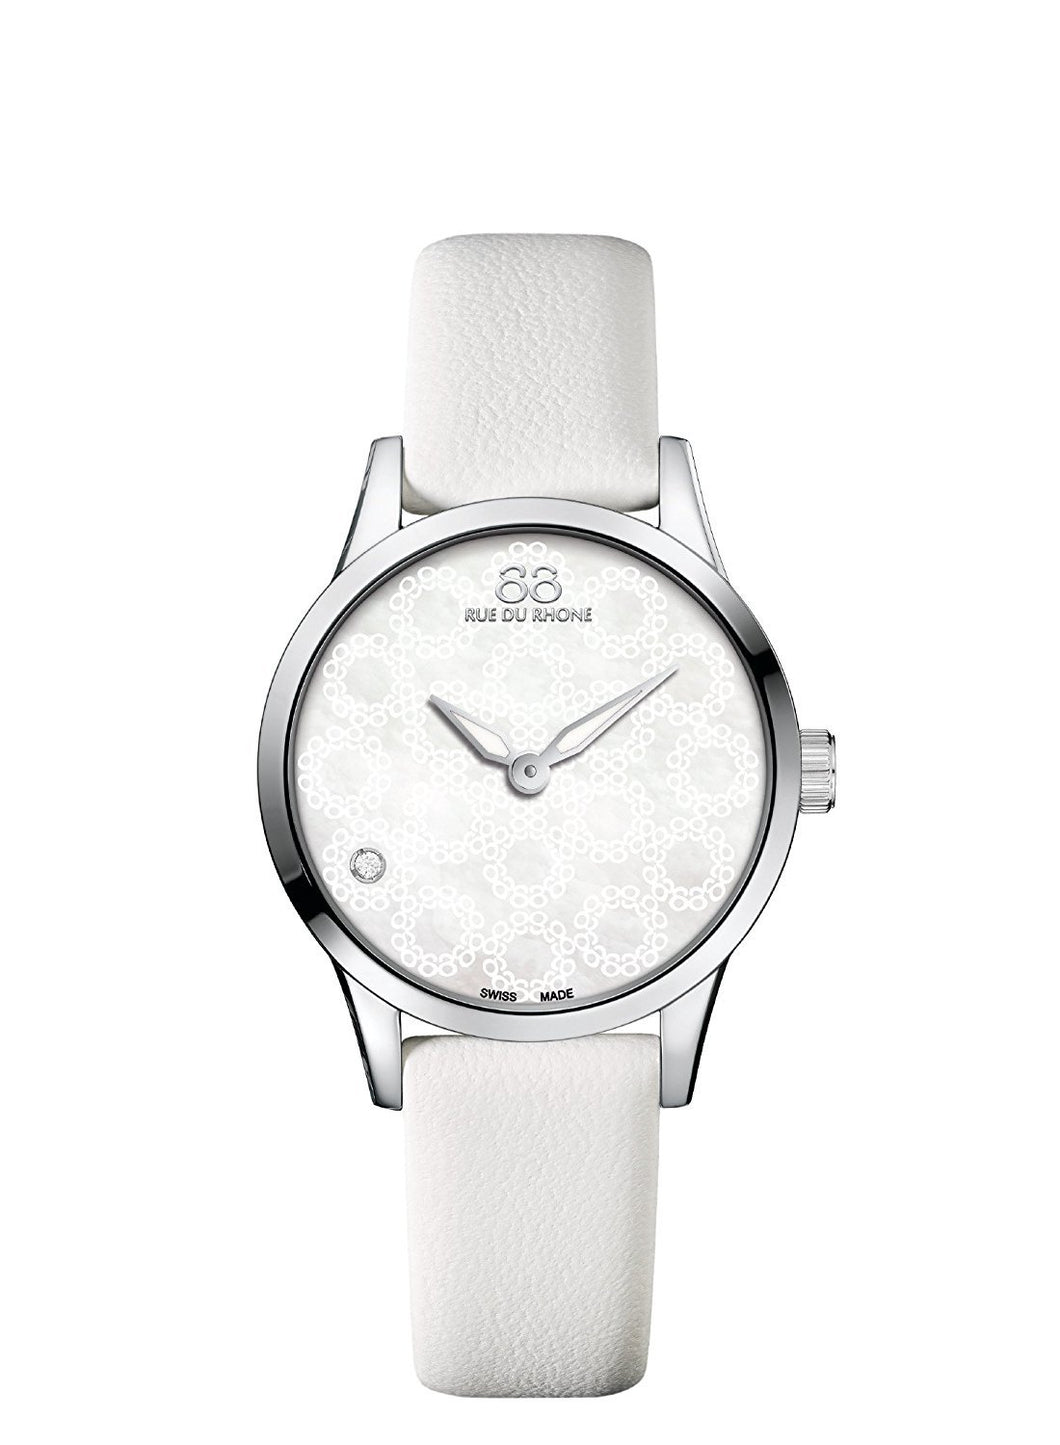 88 Rue du Rhone Swiss Quartz Watch Women  87WA163201 white bracelet